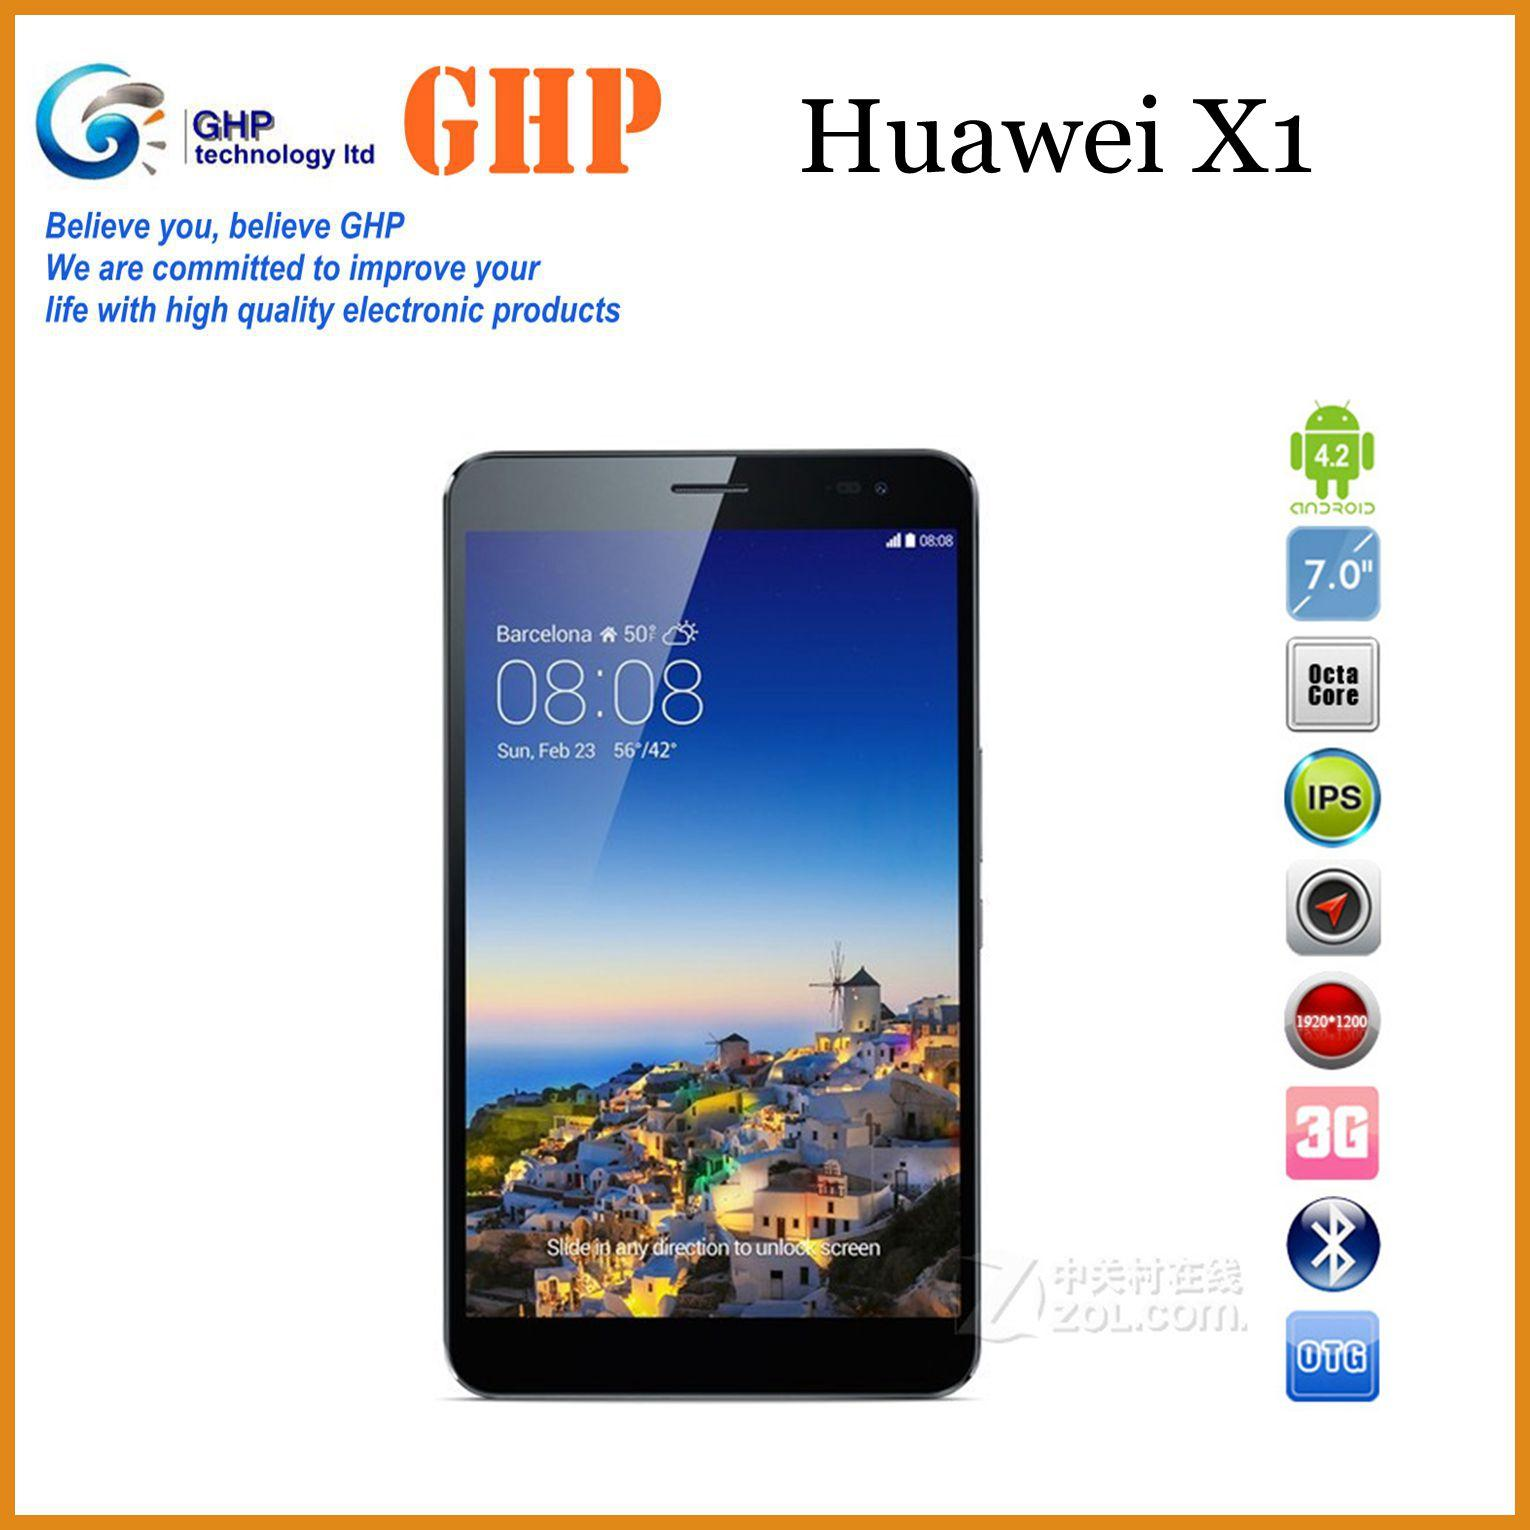 huawei x1 user manual user guide manual that easy to read u2022 rh sibere co Huawei Contacts Page Huawei Ascend M860 User Manual